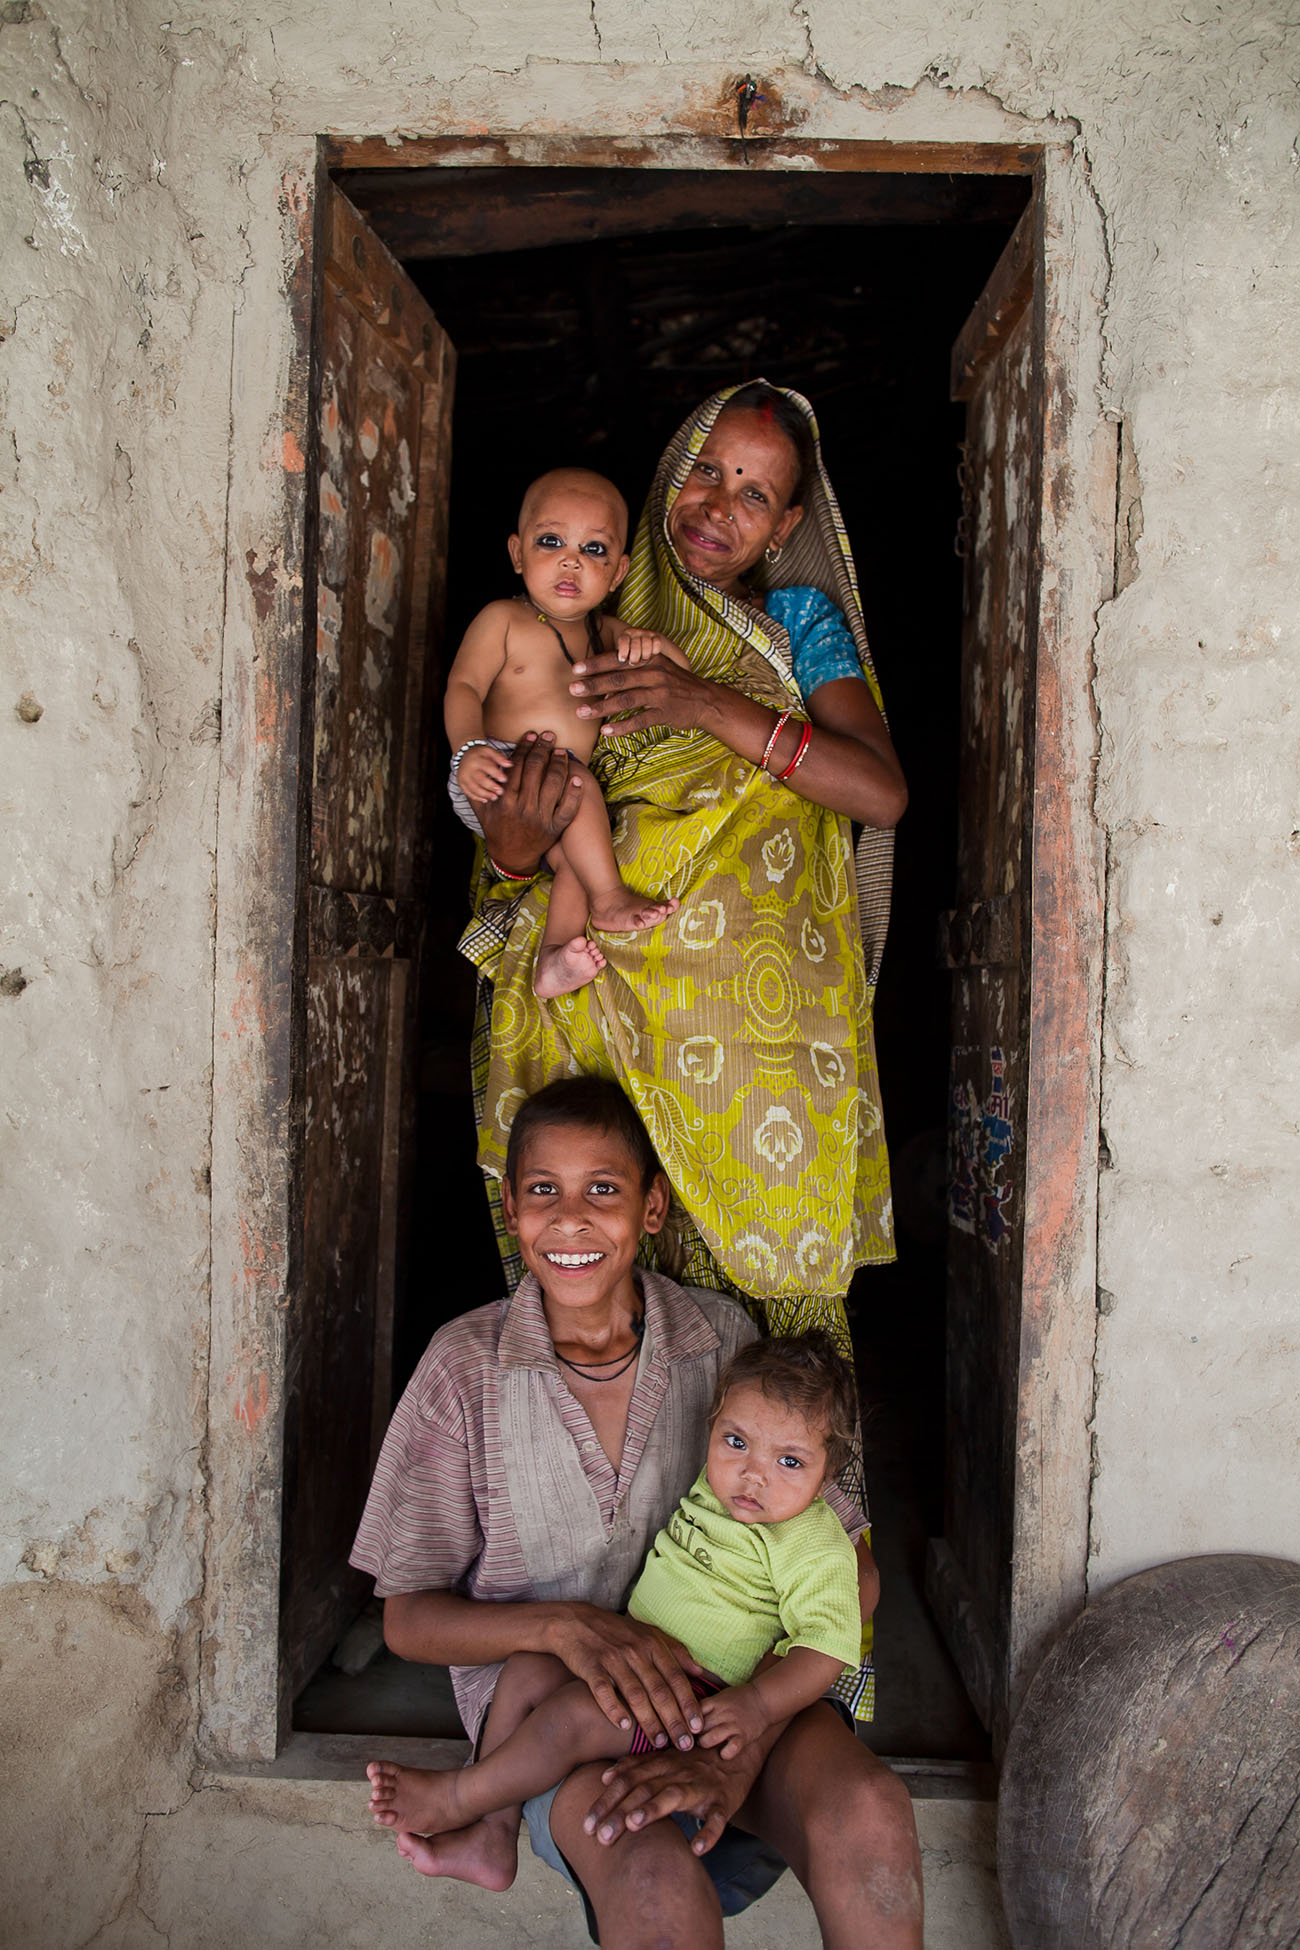 Indian mothers and their babies in a doorway.